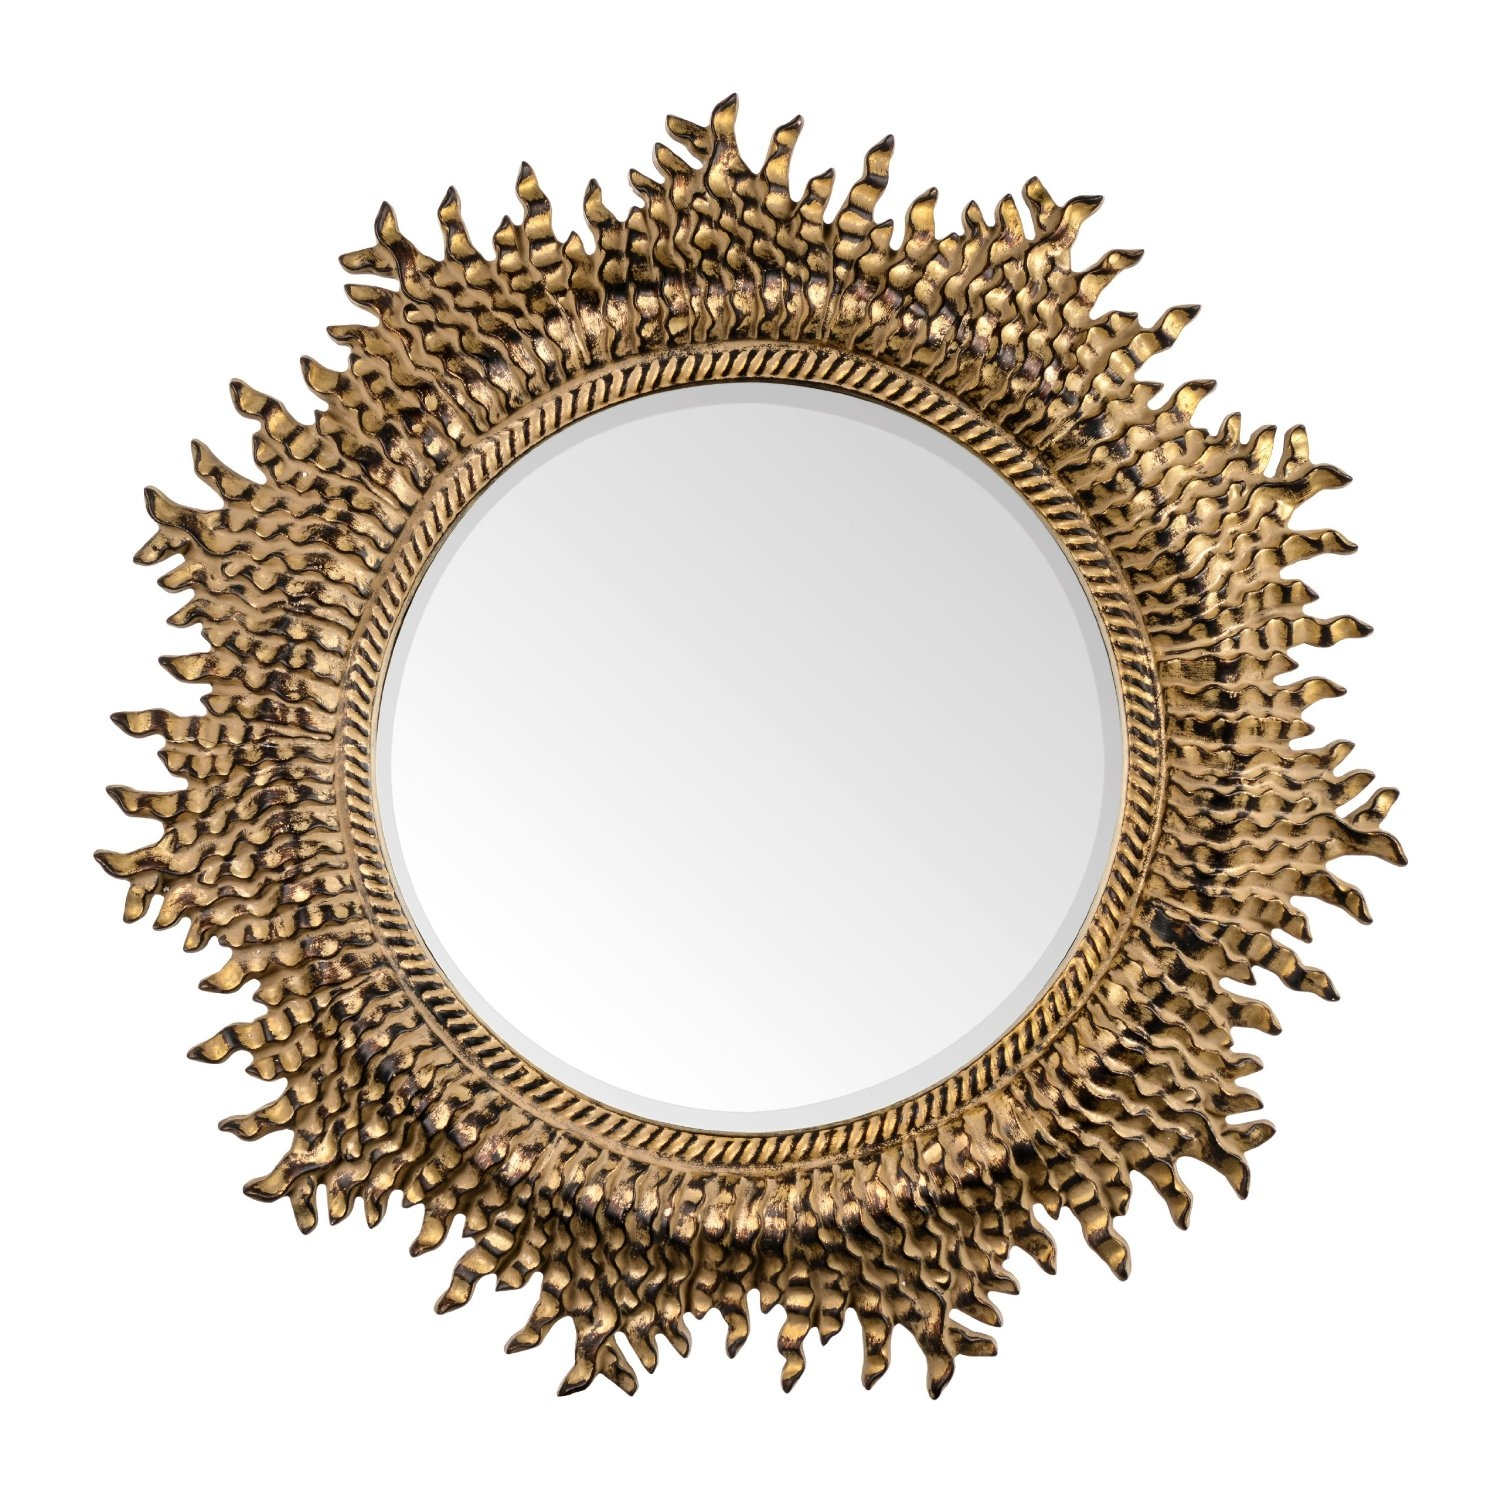 16 Ornate Mirrors For Your Home Qosy Inside Ornate Gold Mirror (Image 1 of 15)